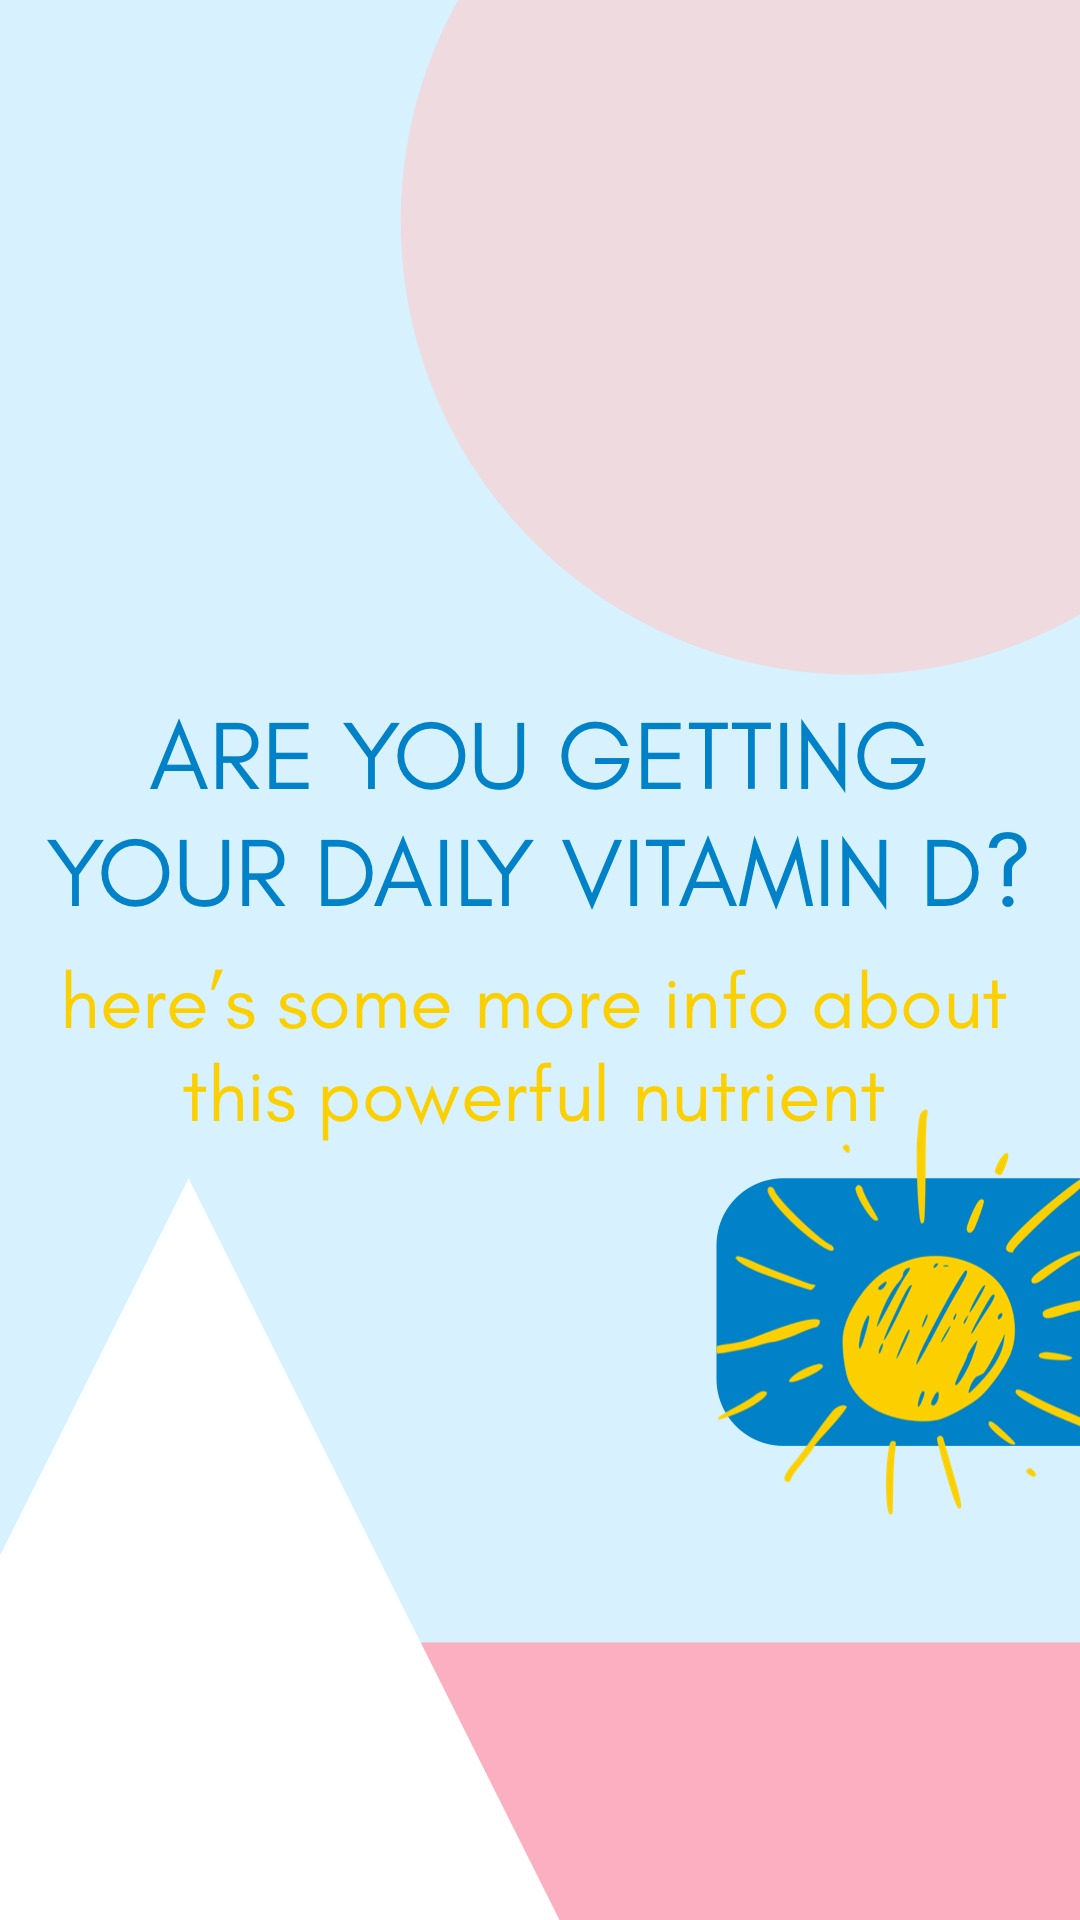 ESSENTIAL VITAMIN D Are you getting enough?